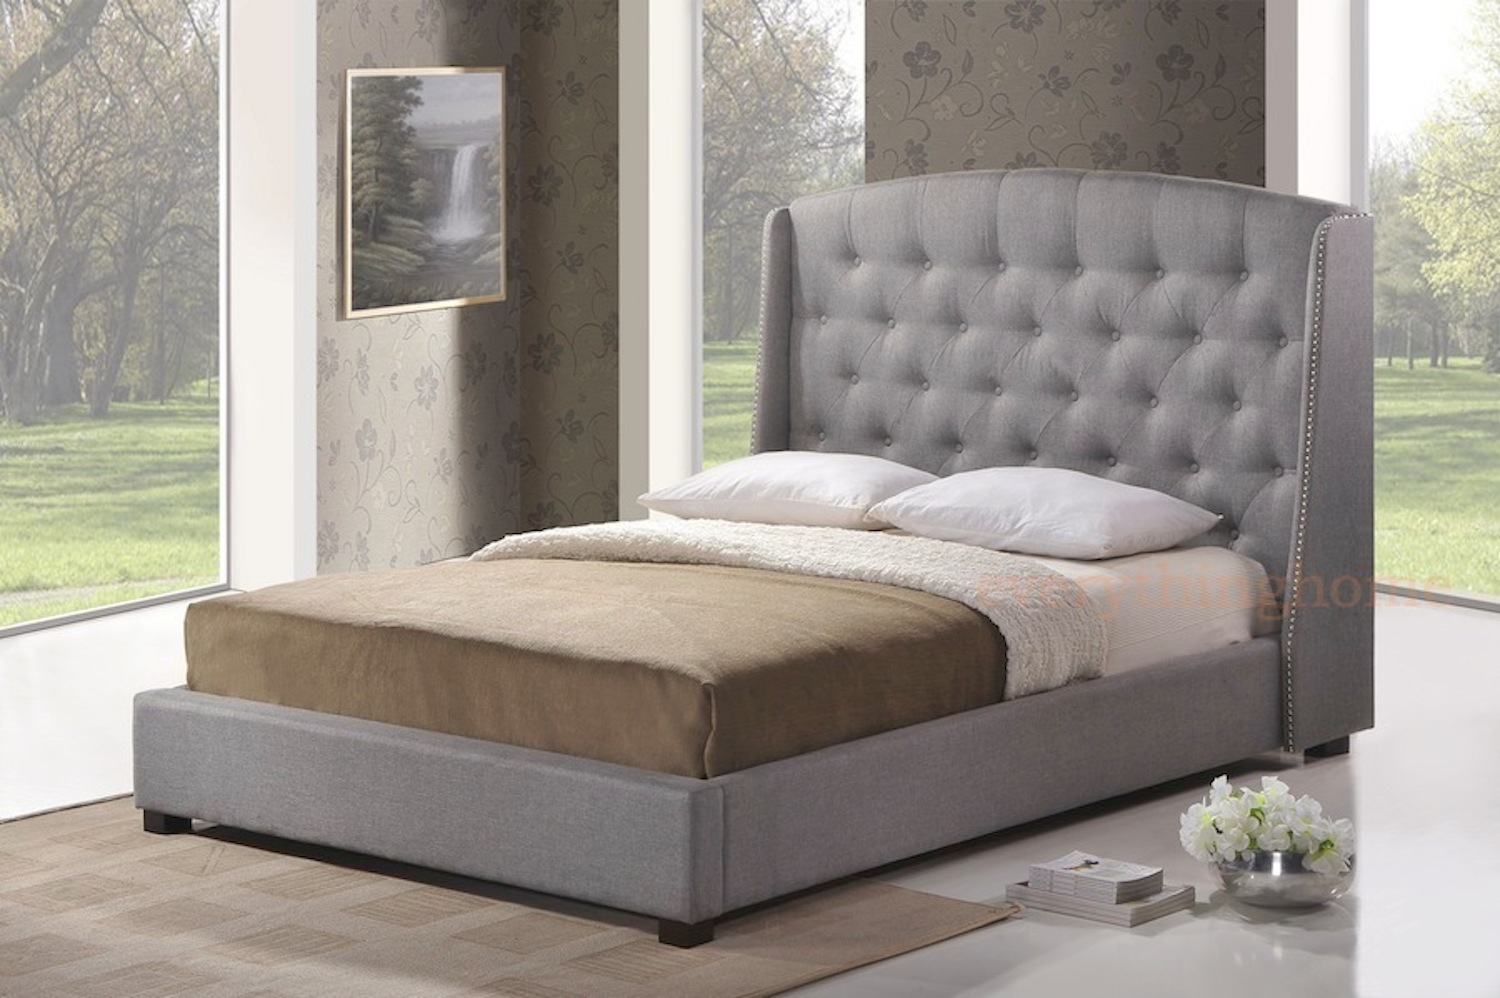 GRAY GREY LINEN QUEEN PLATFORM BED FRAME W/ TUFTED